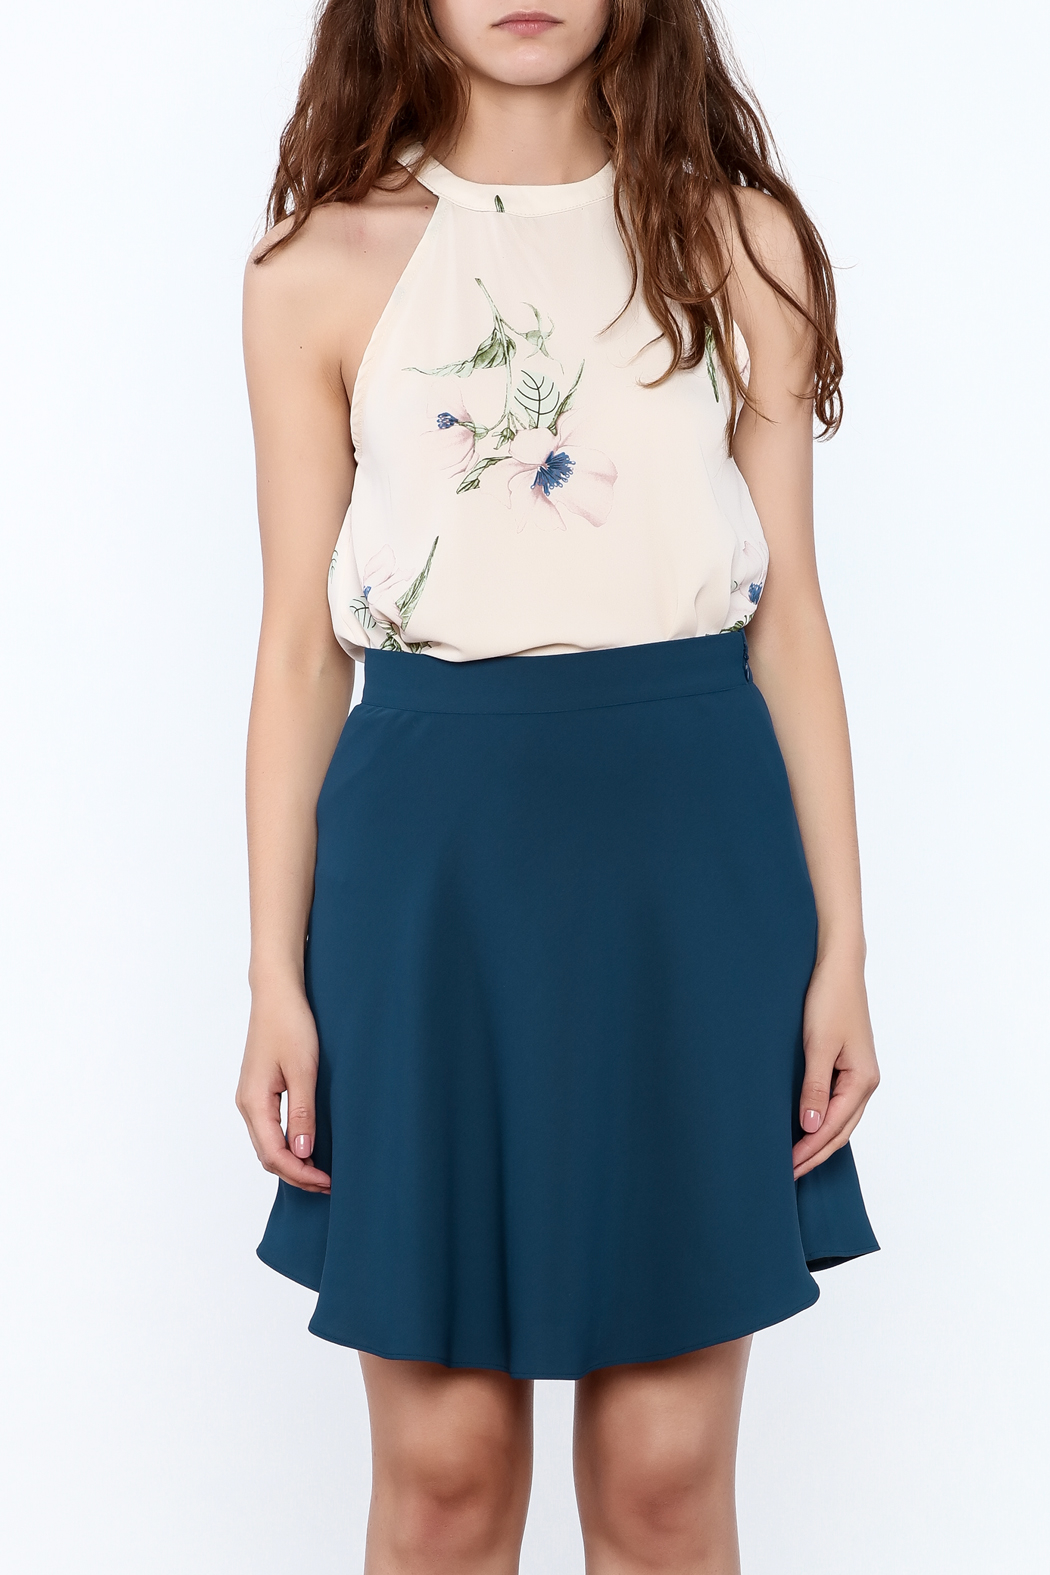 Audrey Beige Floral Printed Top - Front Cropped Image